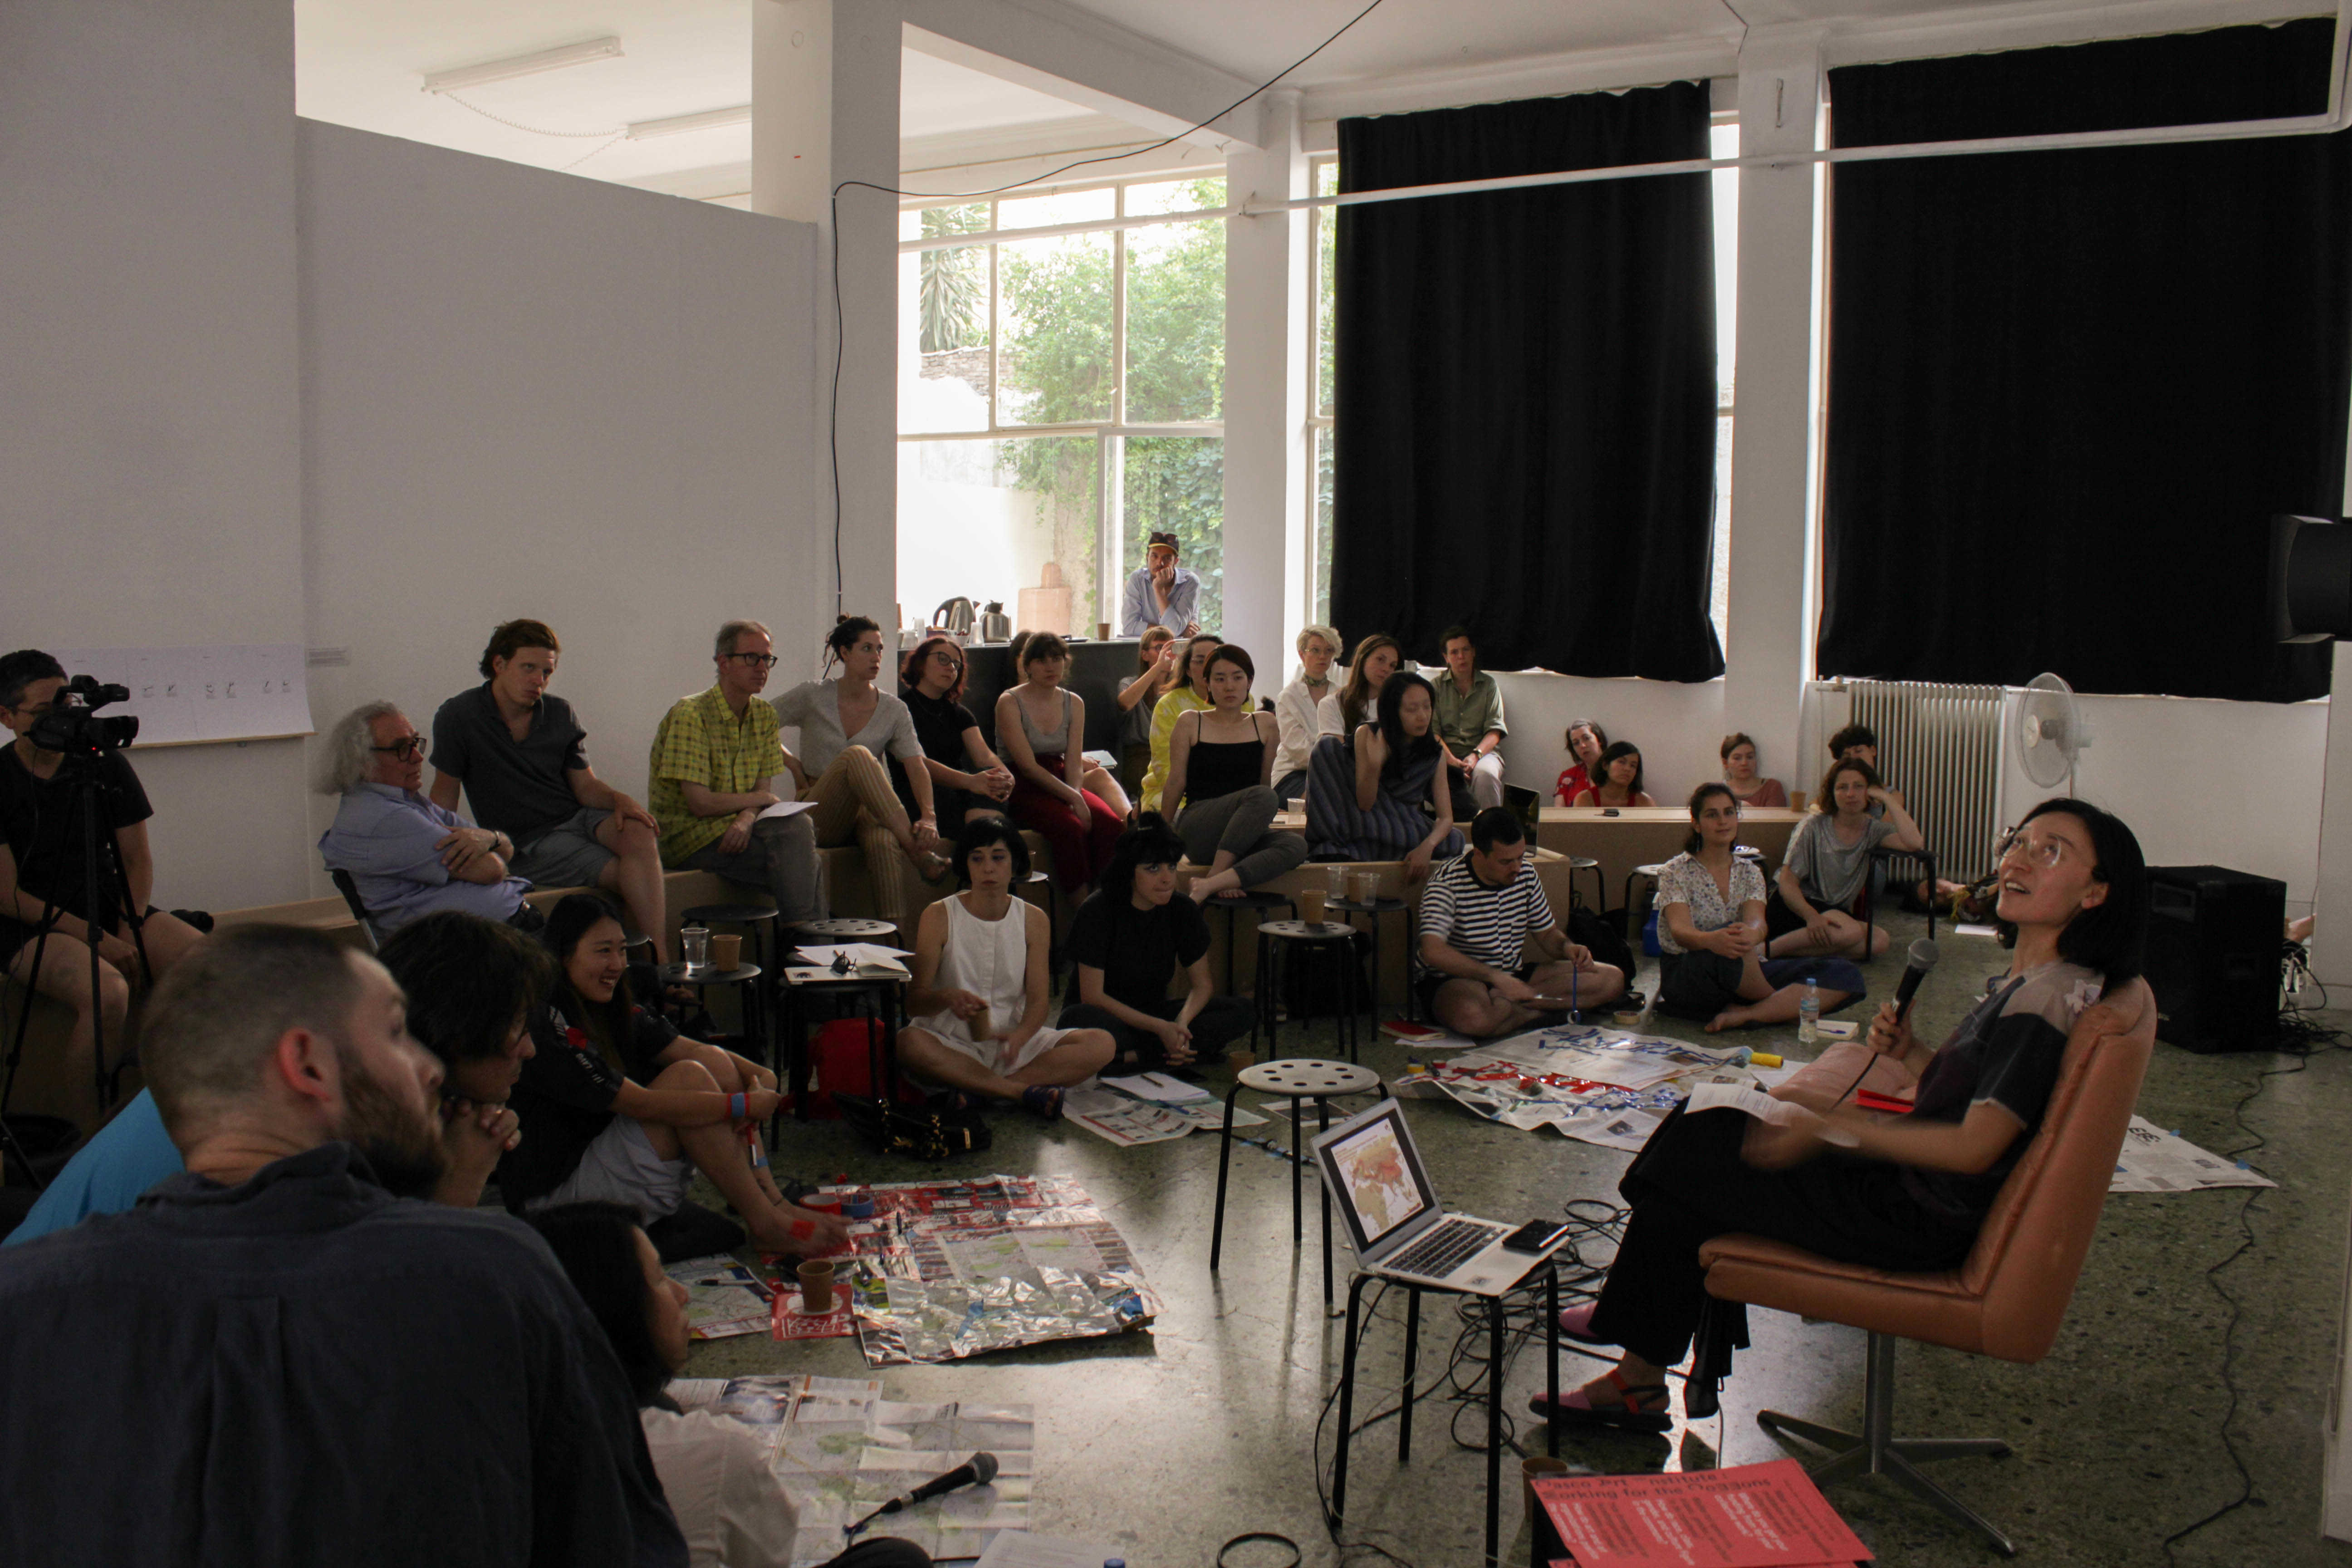 DAI's Roaming Assembly# 22: Eurasian Steps. Location: State of Concept, Athens. Curators You Mi and Binna Choi. Sunday June 3, 2018. Photo: Silvia Ulloa.